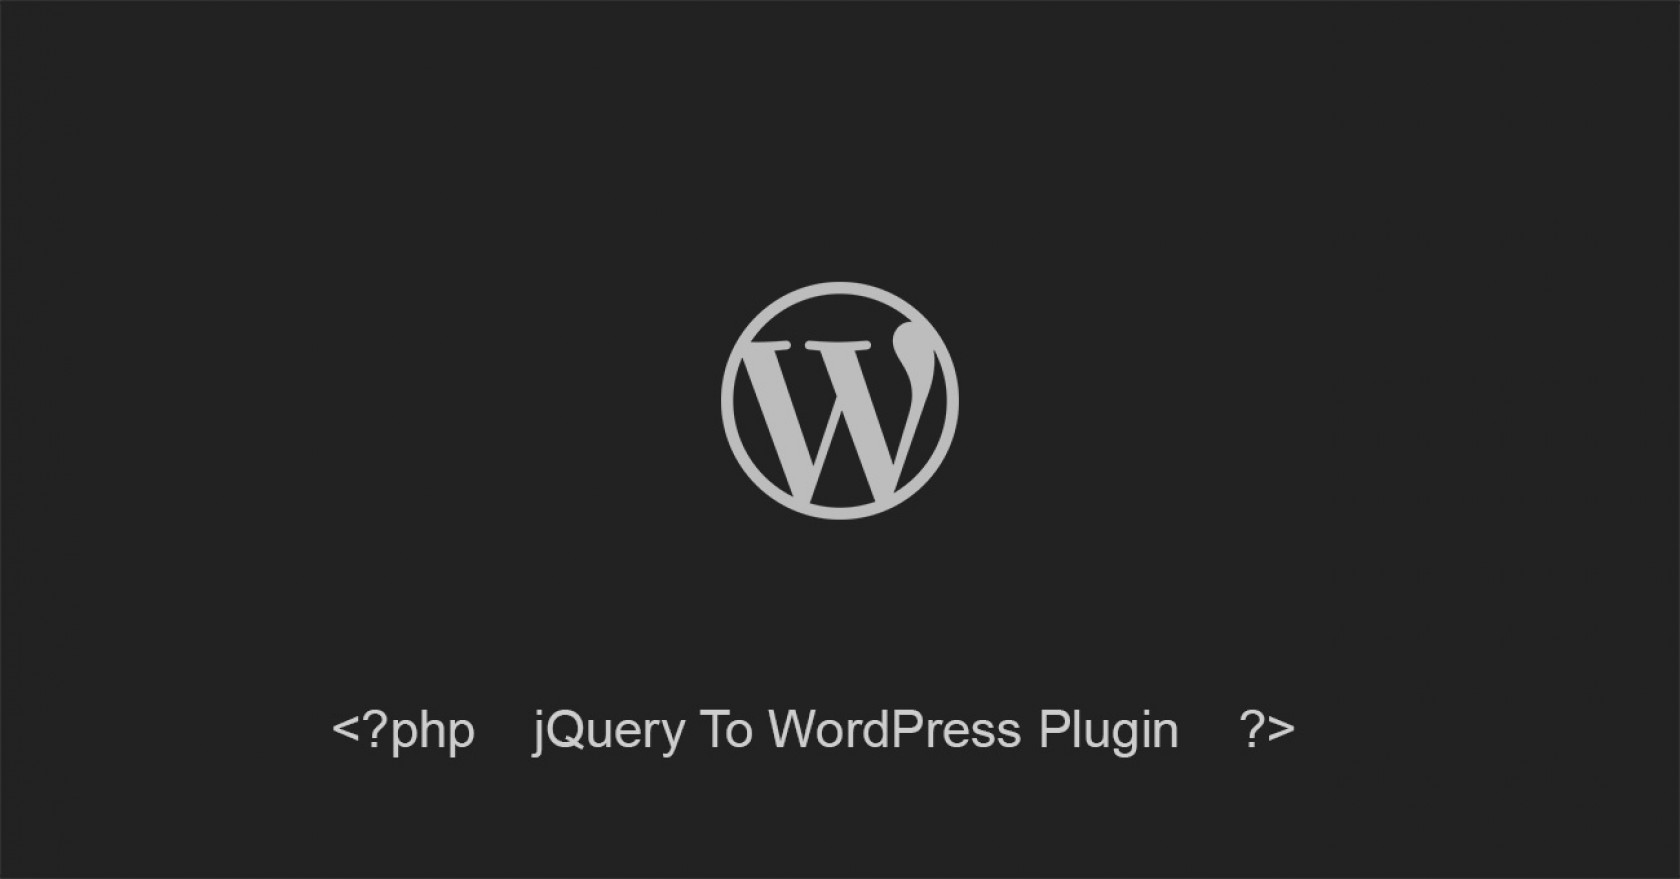 1680__1050__auto__-wp-content-uploads-2015-01-jquery-to-wp-plugin